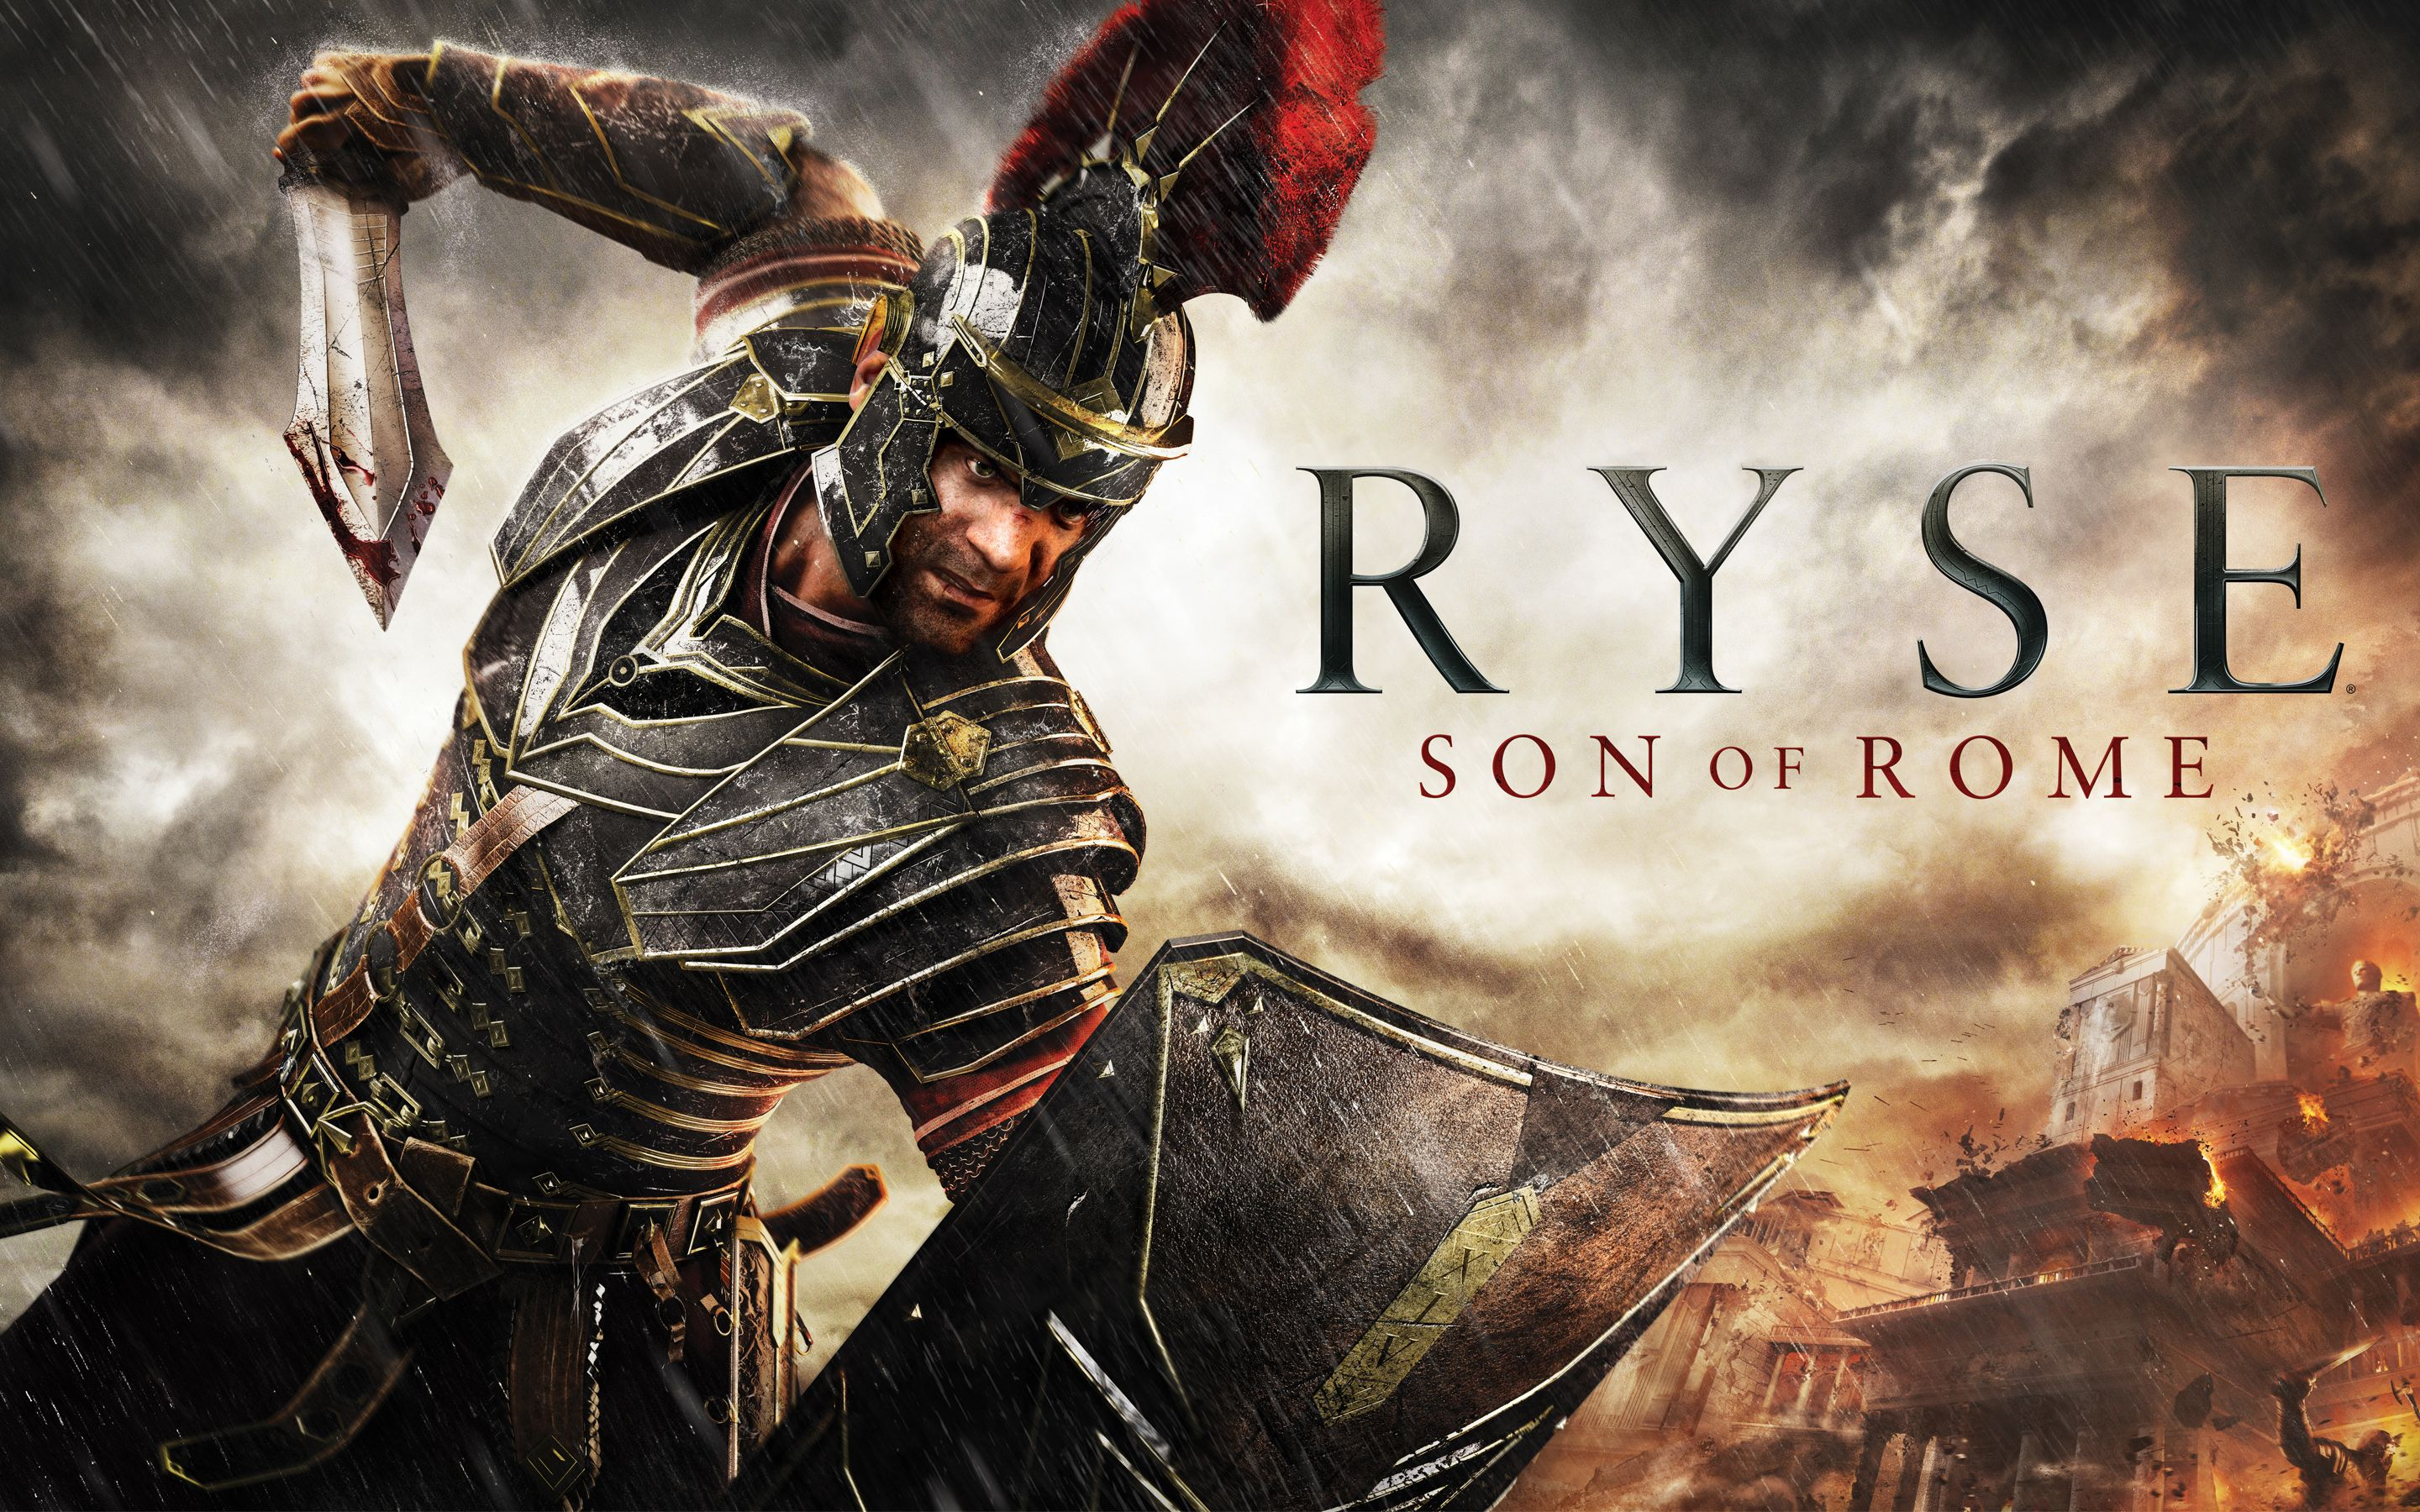 Ryse Son Of Rome Wallpaper: Ryse Son Of Rome Wallpapers - Pesquisa Google